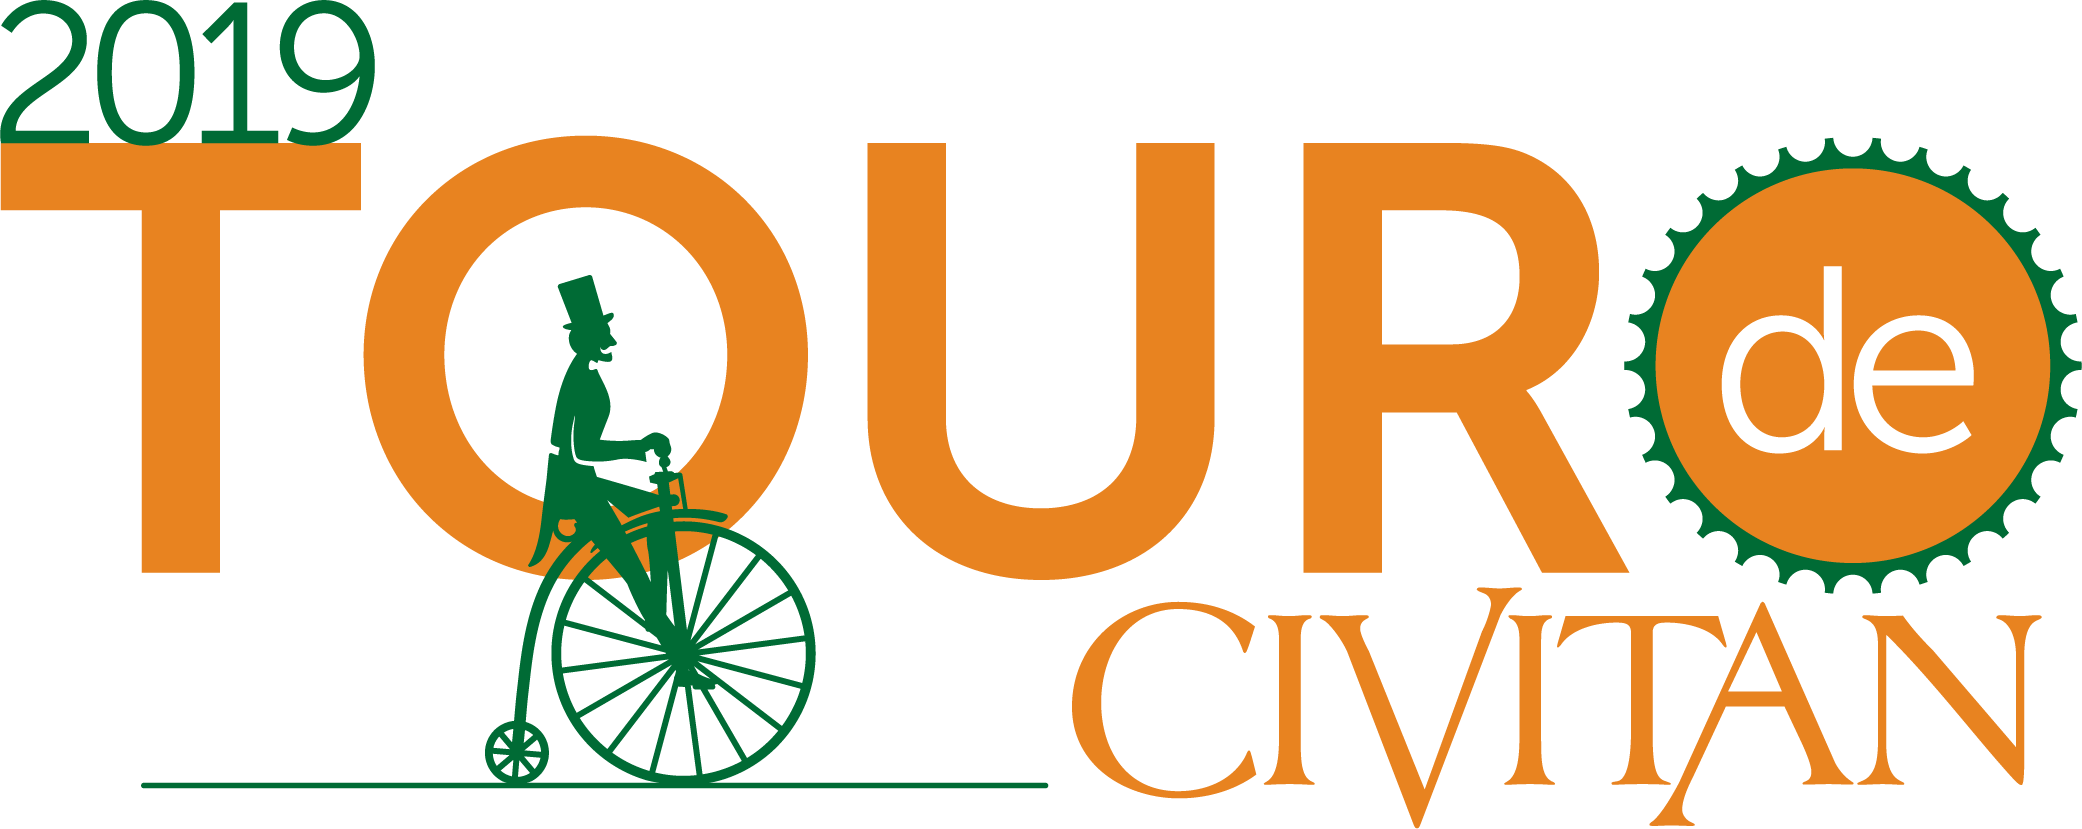 Logo for Tour de Civitan 2019